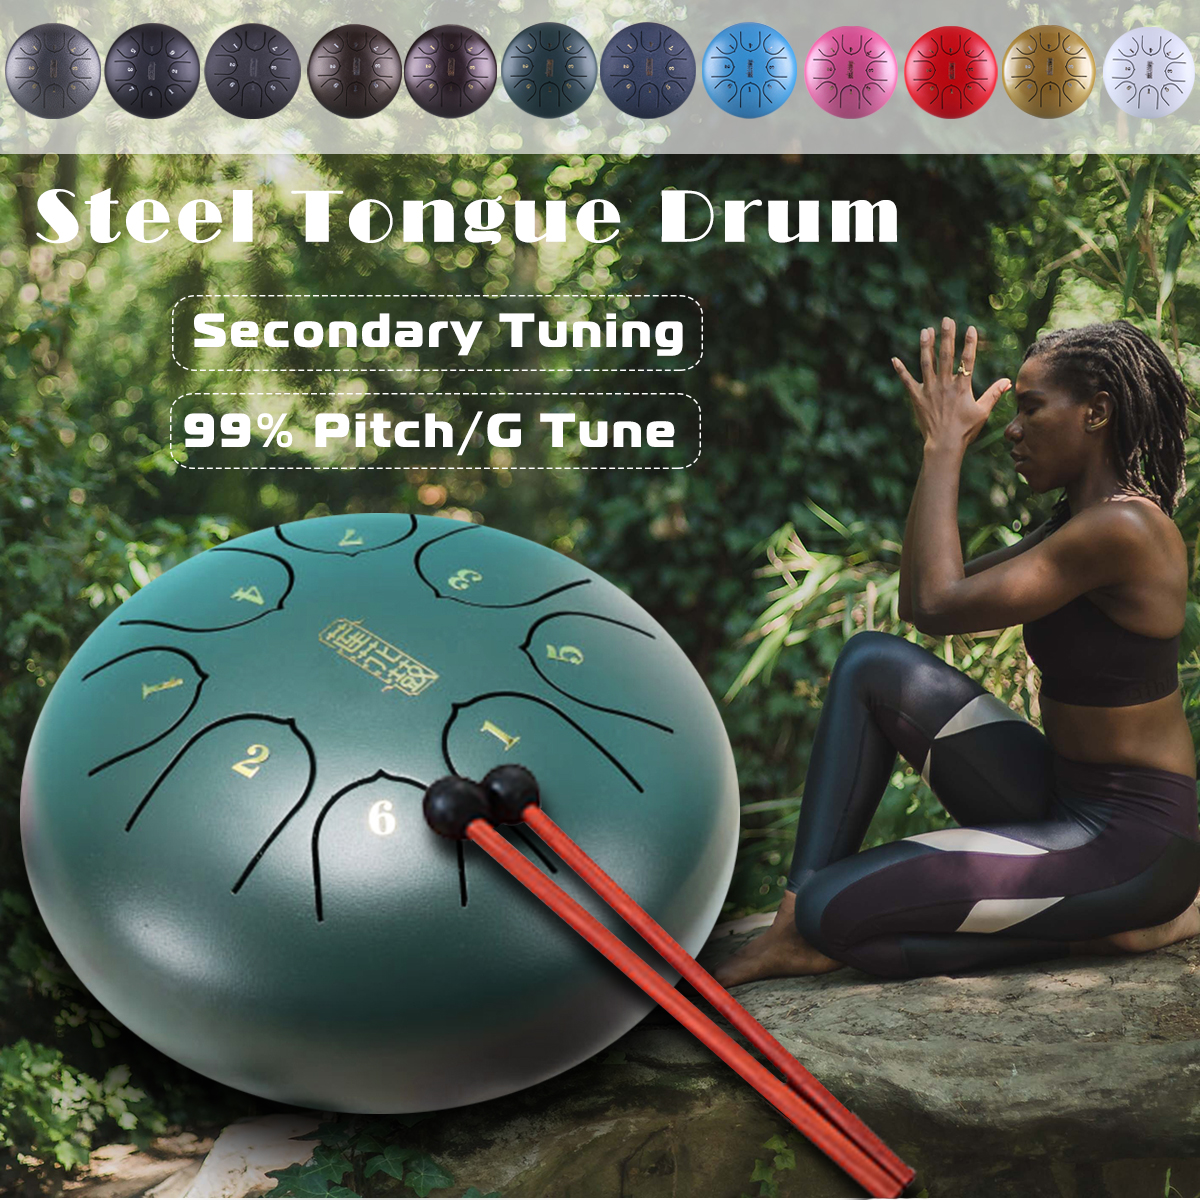 6 inch Steel Tongue Drum Mini 8 Tone G Tune Hand Pan Drum Tank Hand Drum with Drumsticks Carrying Bag Percussion Instruments